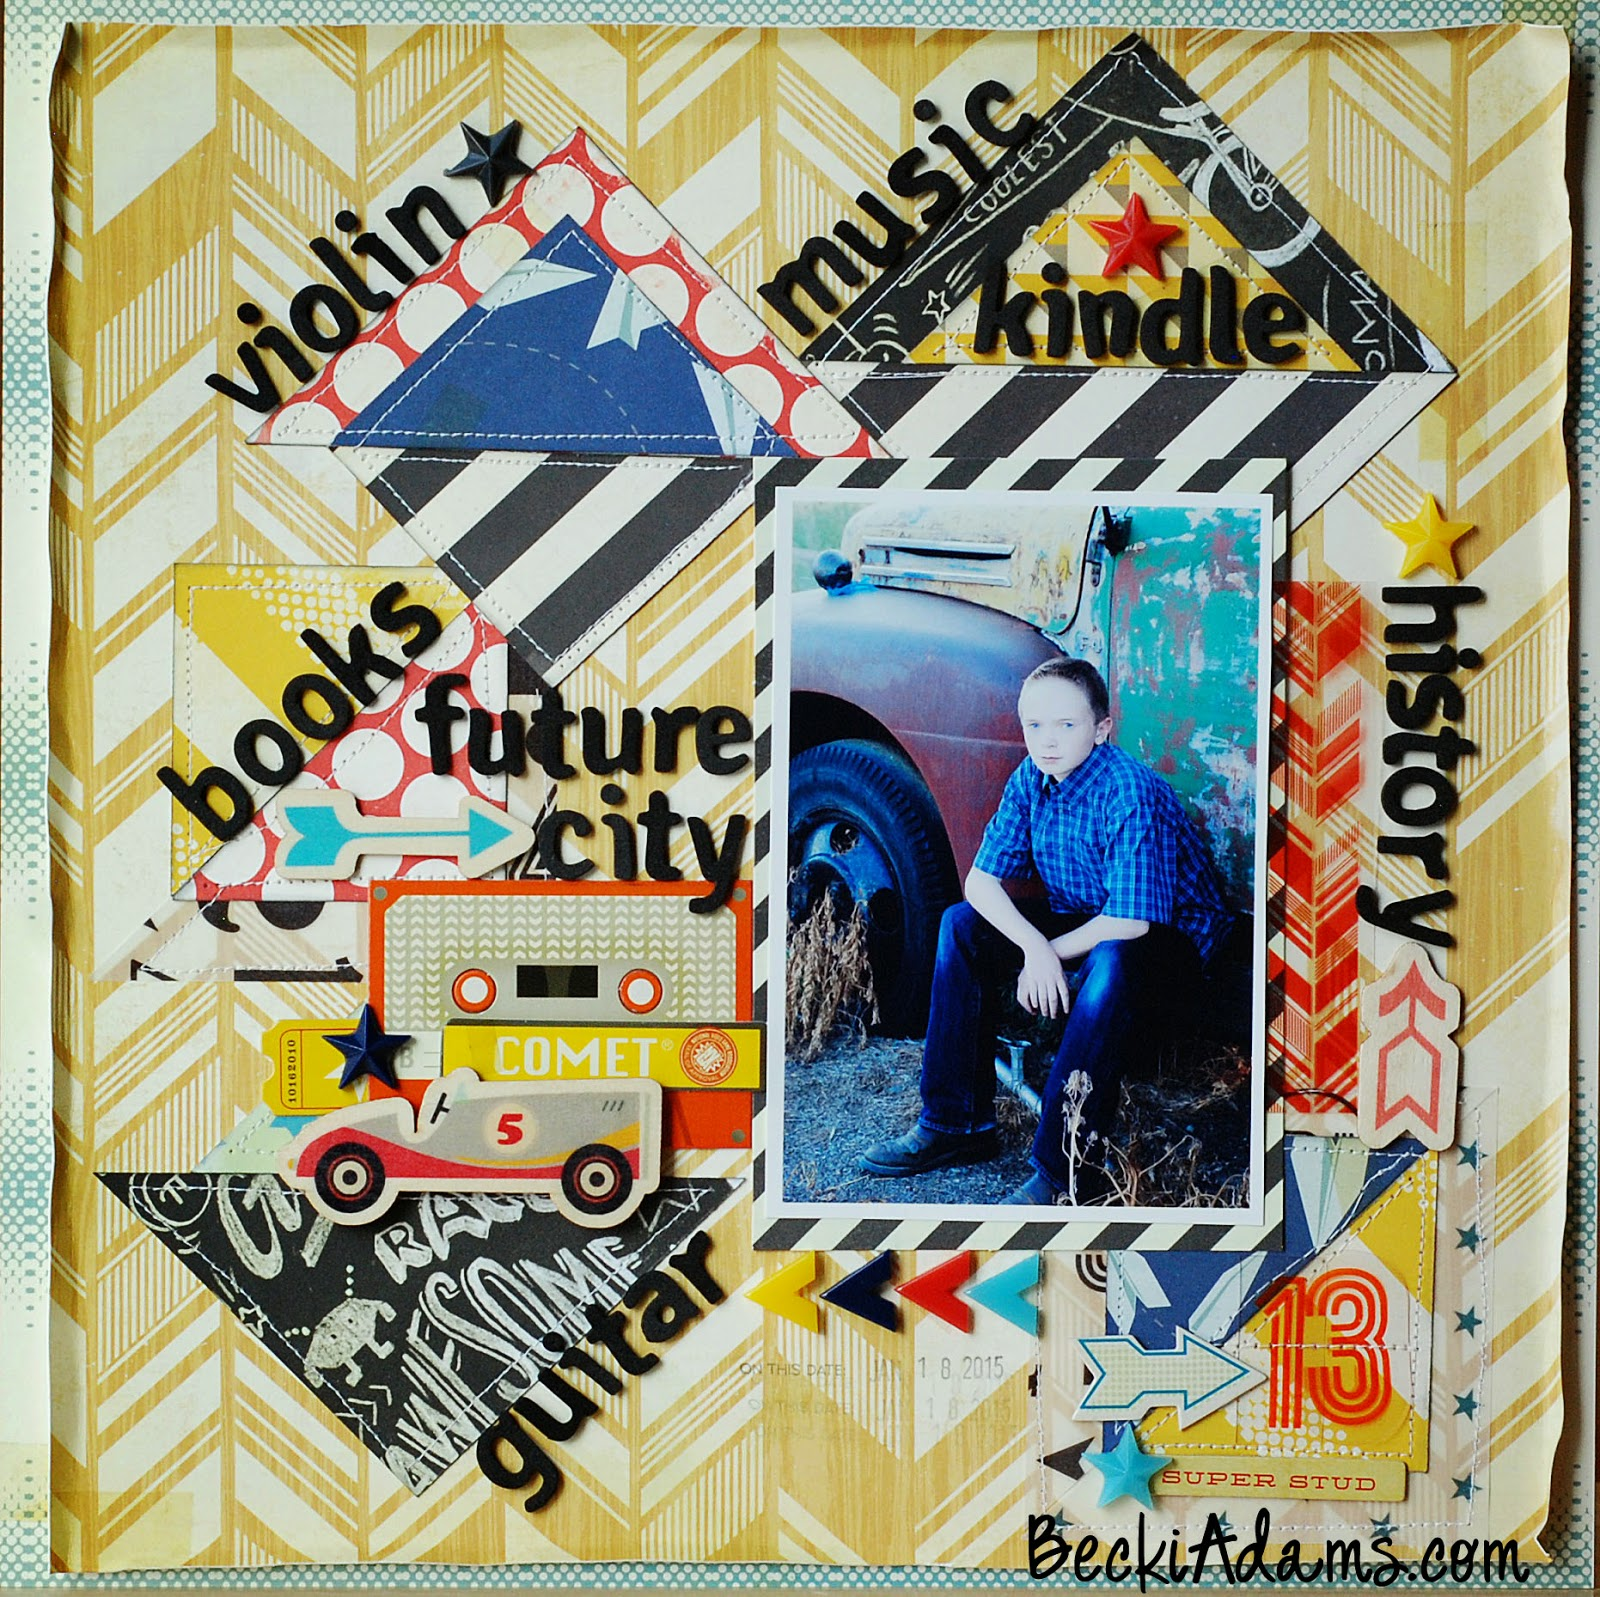 how to scrapbook using triangles by @jbckadams #scrapbooking #layout #scrapbook #papercrafting